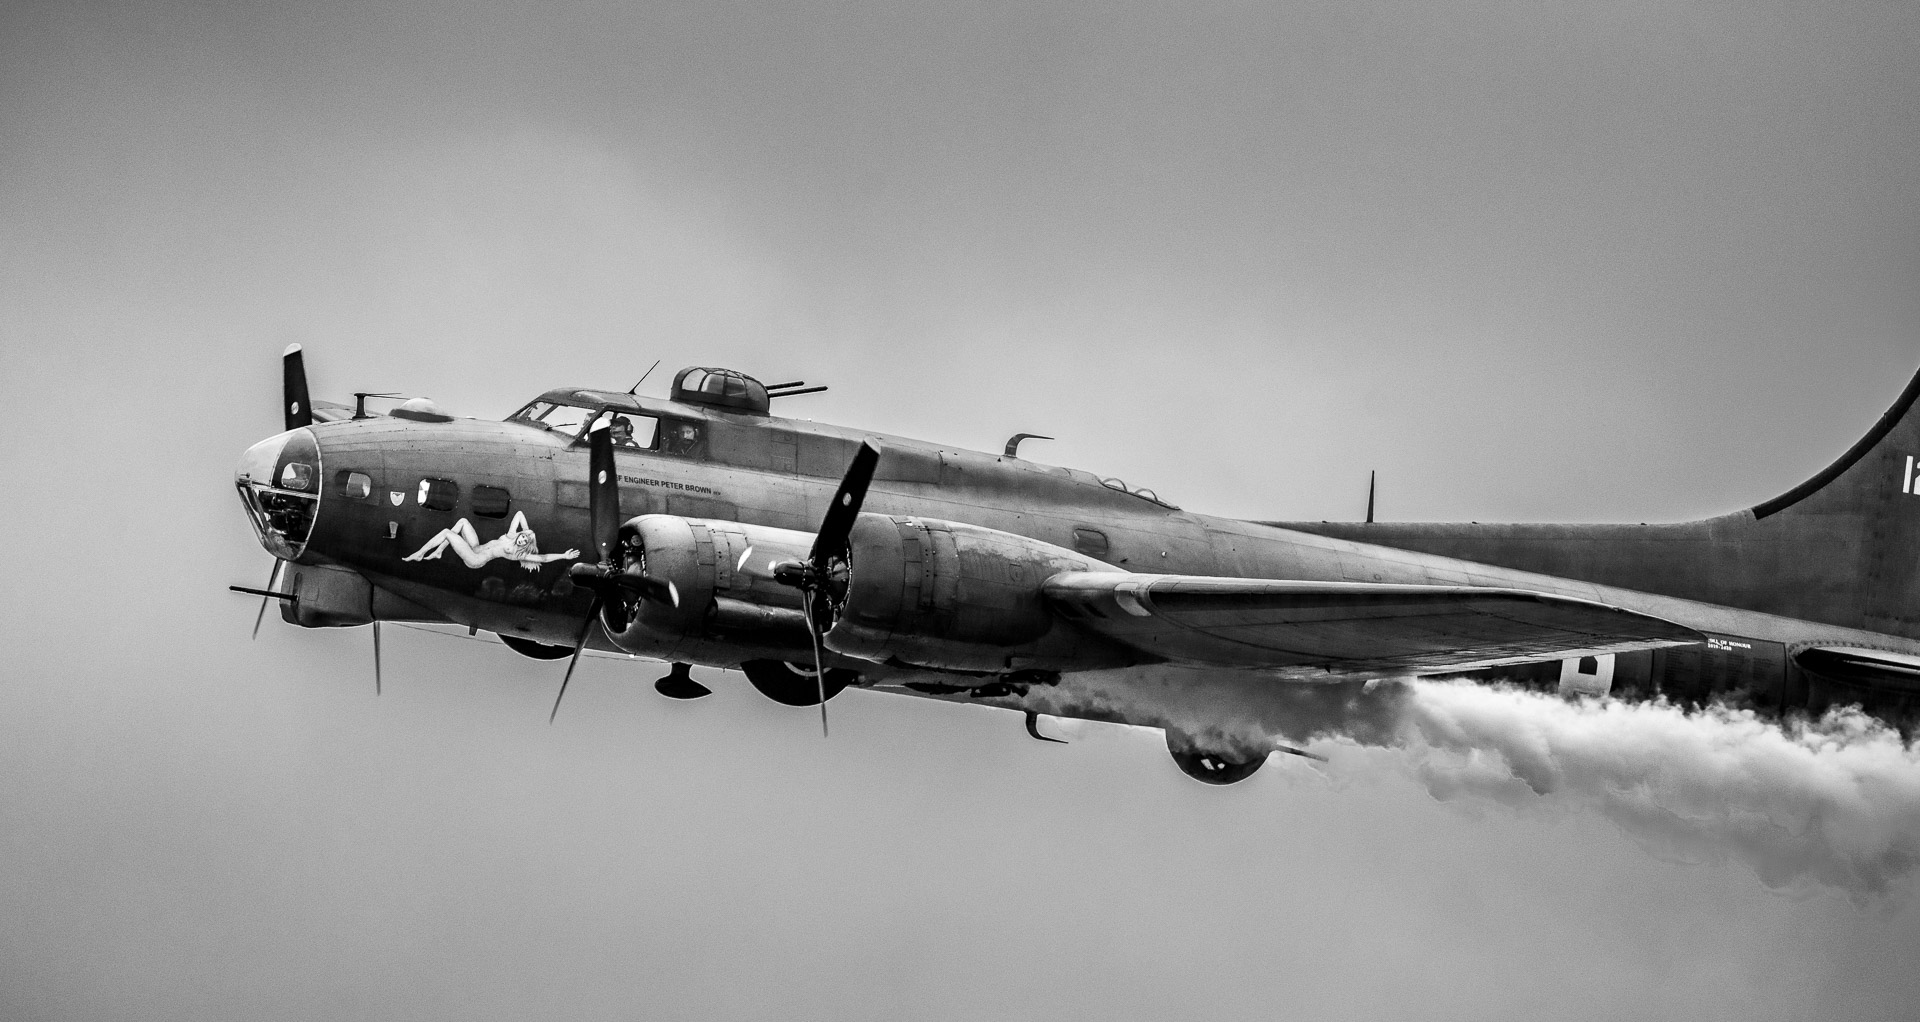 The B17 Flying Fortress at Roskilde Airshow 2019